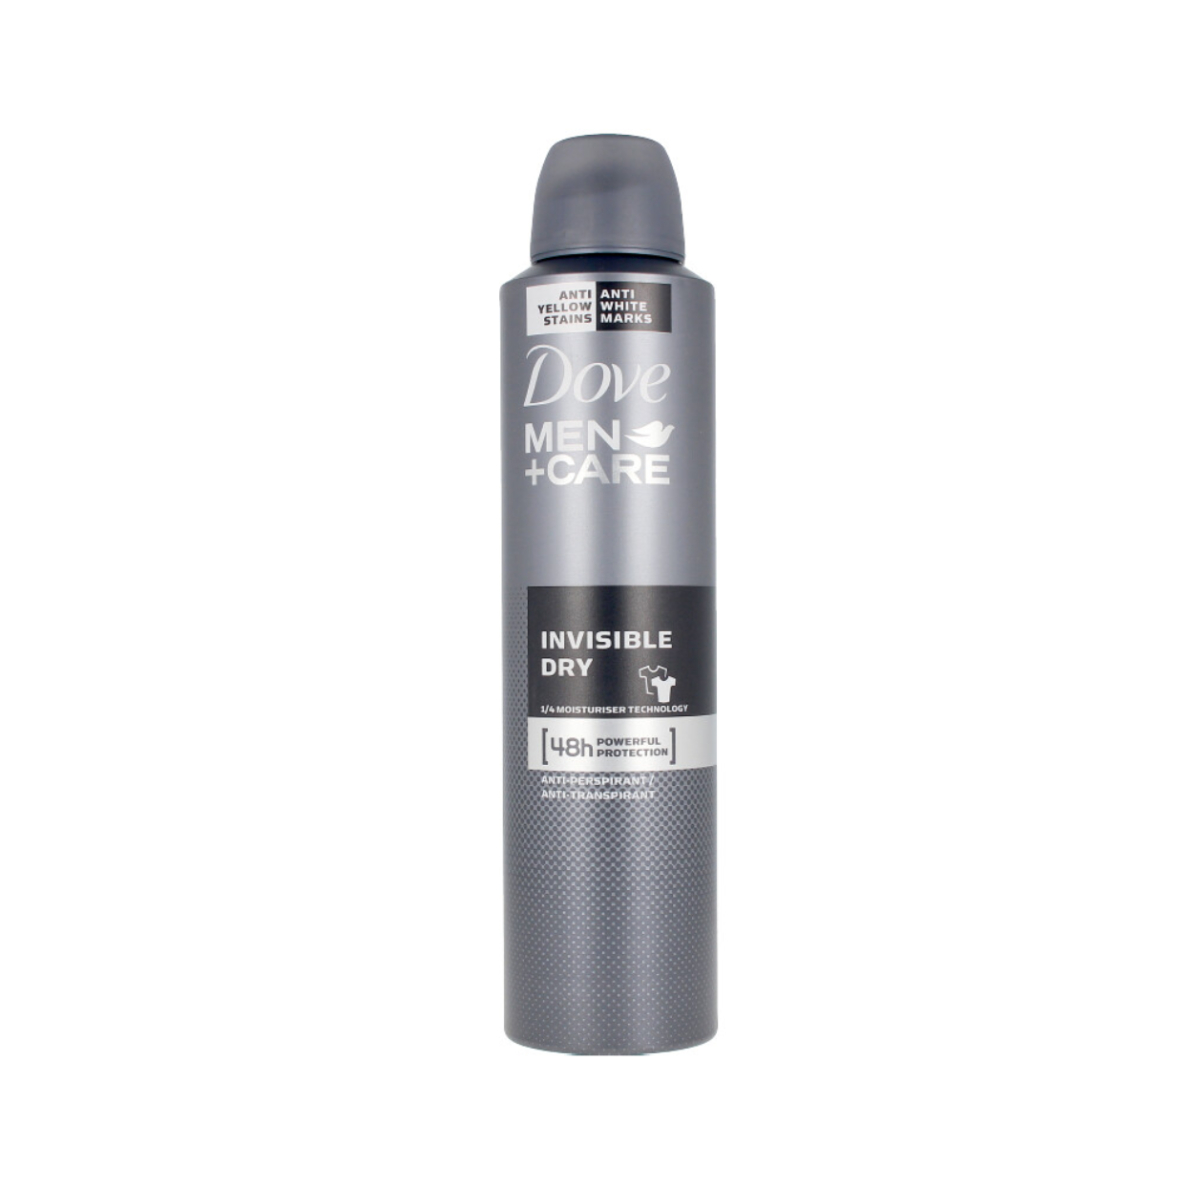 DESODORIZANTE SPRAY DOVE MEN INVISIBLE DRY 250ML